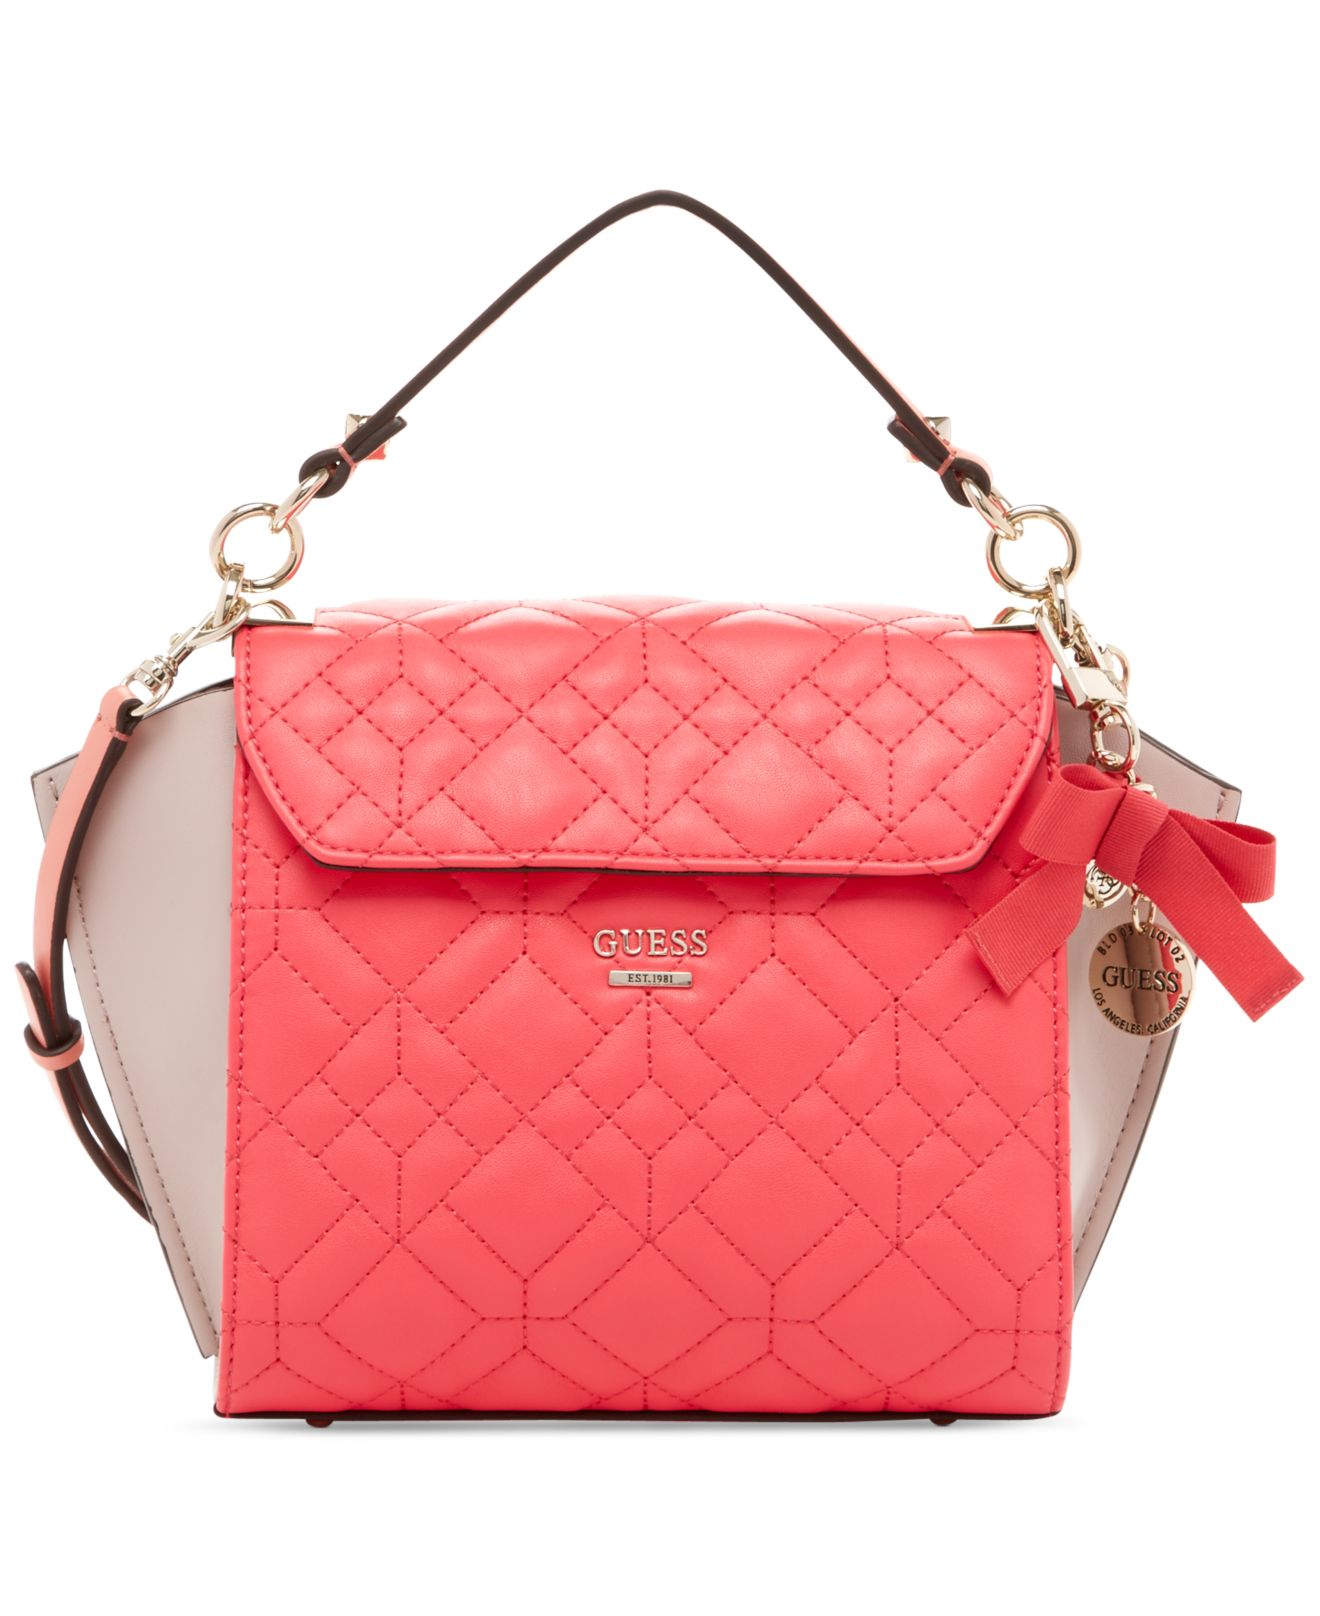 Guess Ines Top Handle Crossbody Bag In Pink Lyst